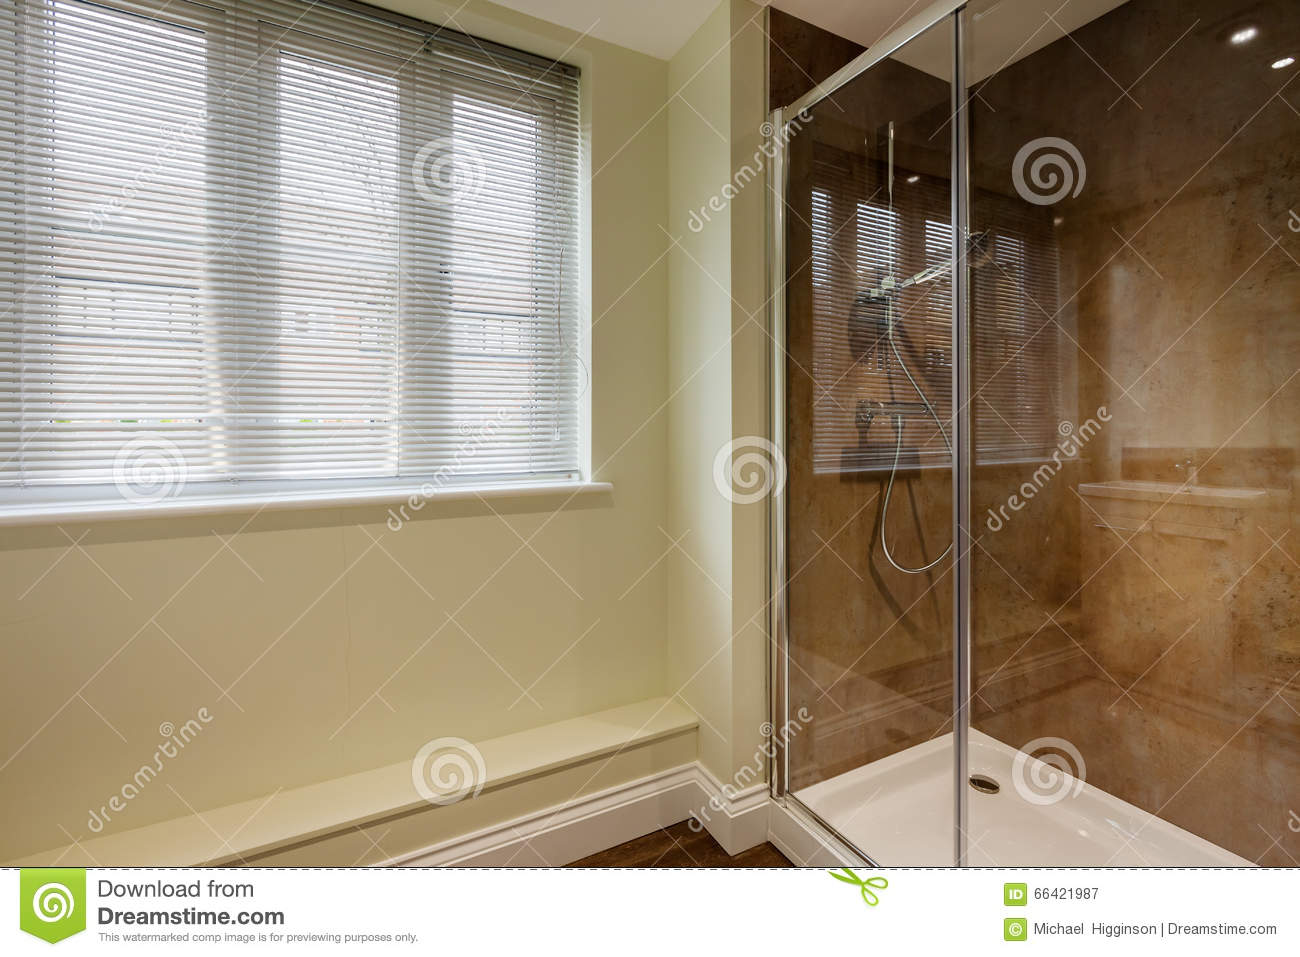 Shower cubicle stock image. Image of double, home, venetian - 66421987